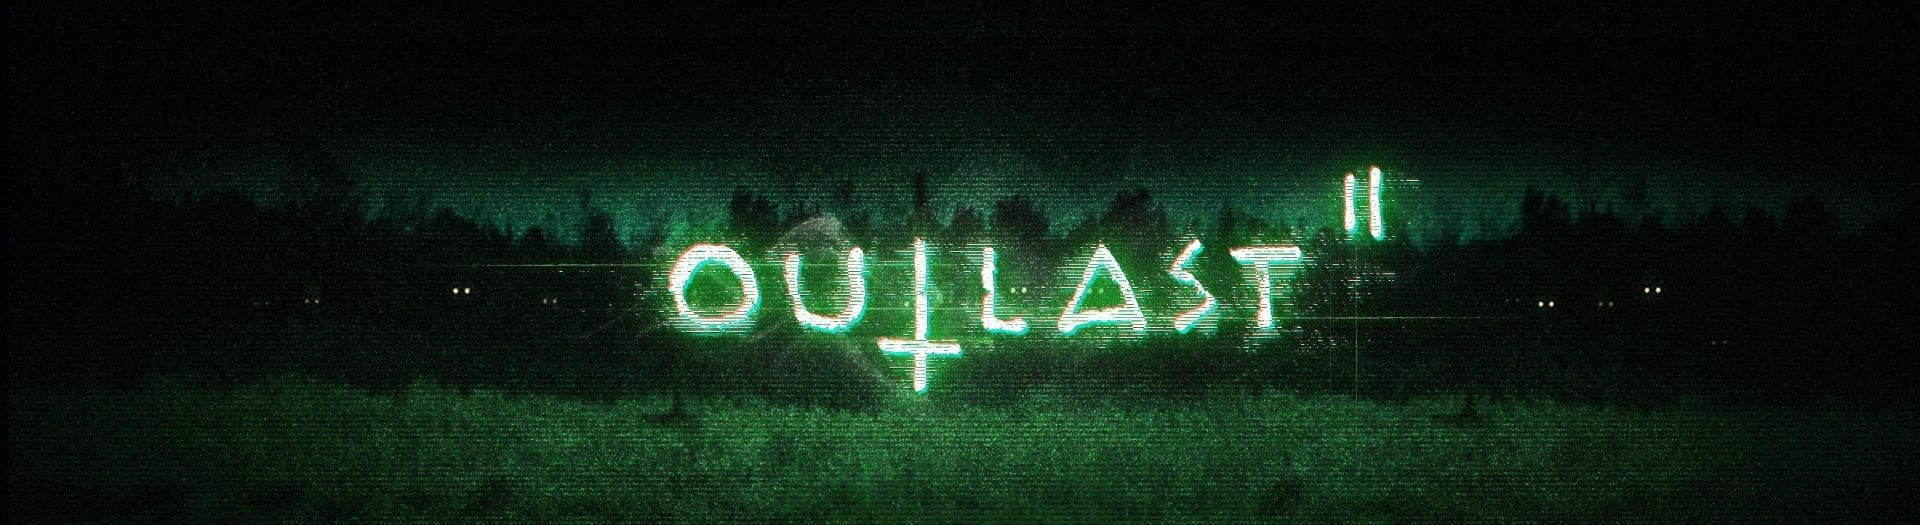 GAME NEWS: OUTLAST TRINITY RELEASE – Outlast 2 gets a hard copy!